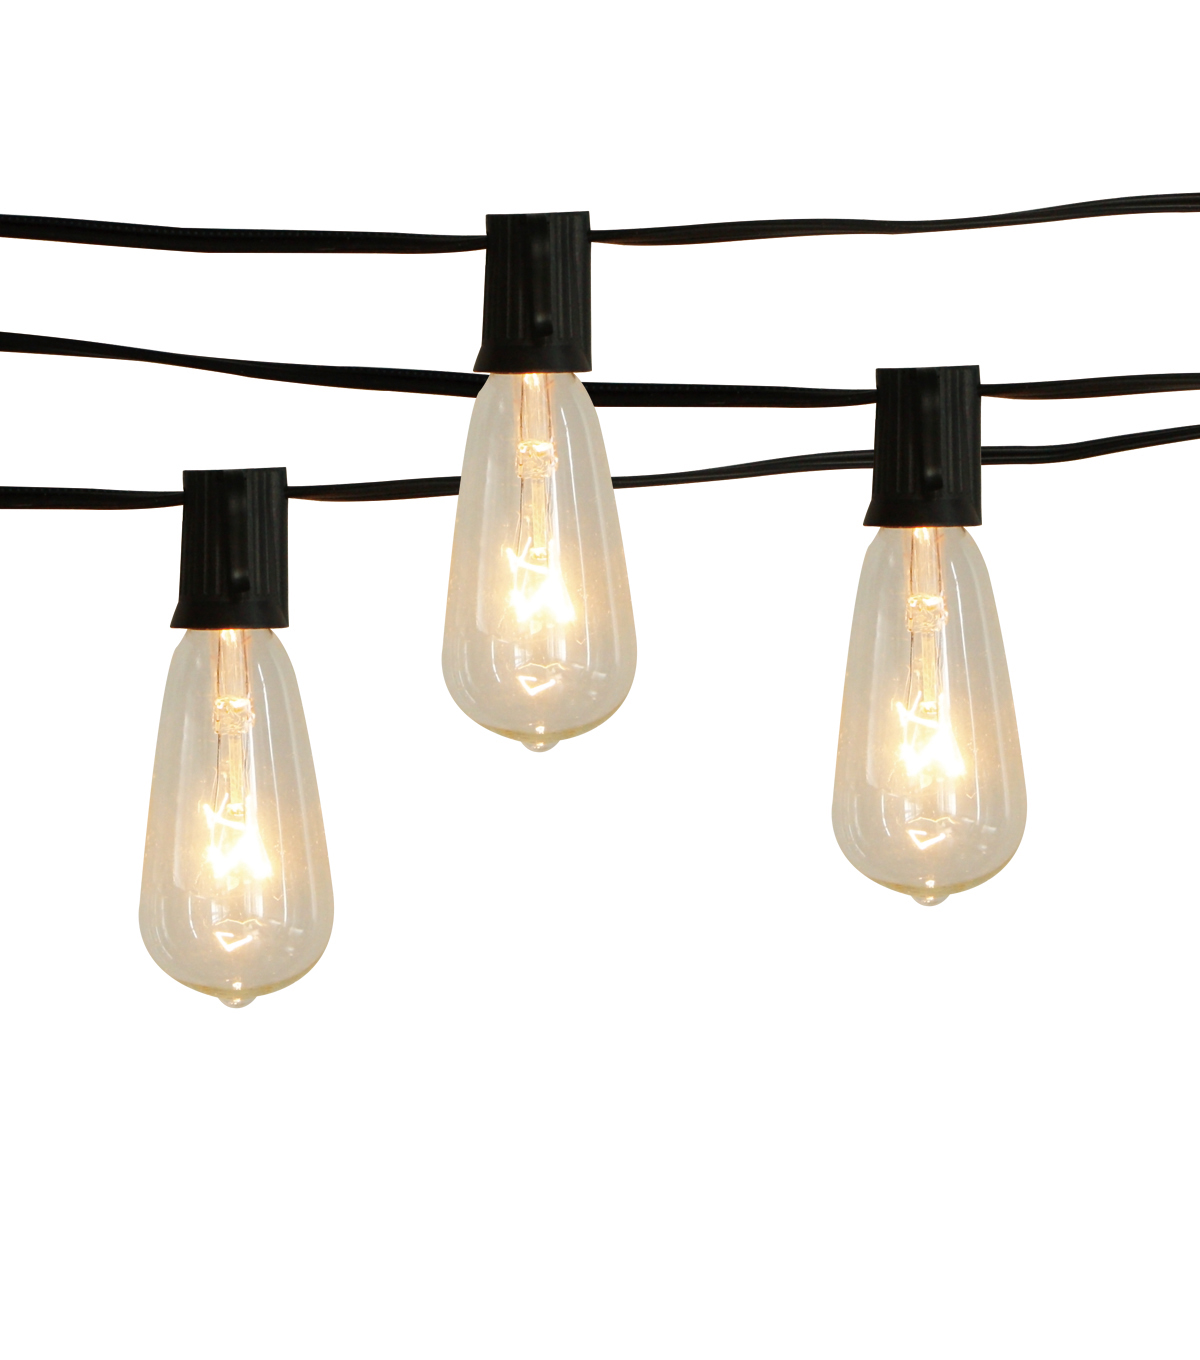 Hudson 43™ Candle & Light Collection St40 Clear Edison Bulb String Lights